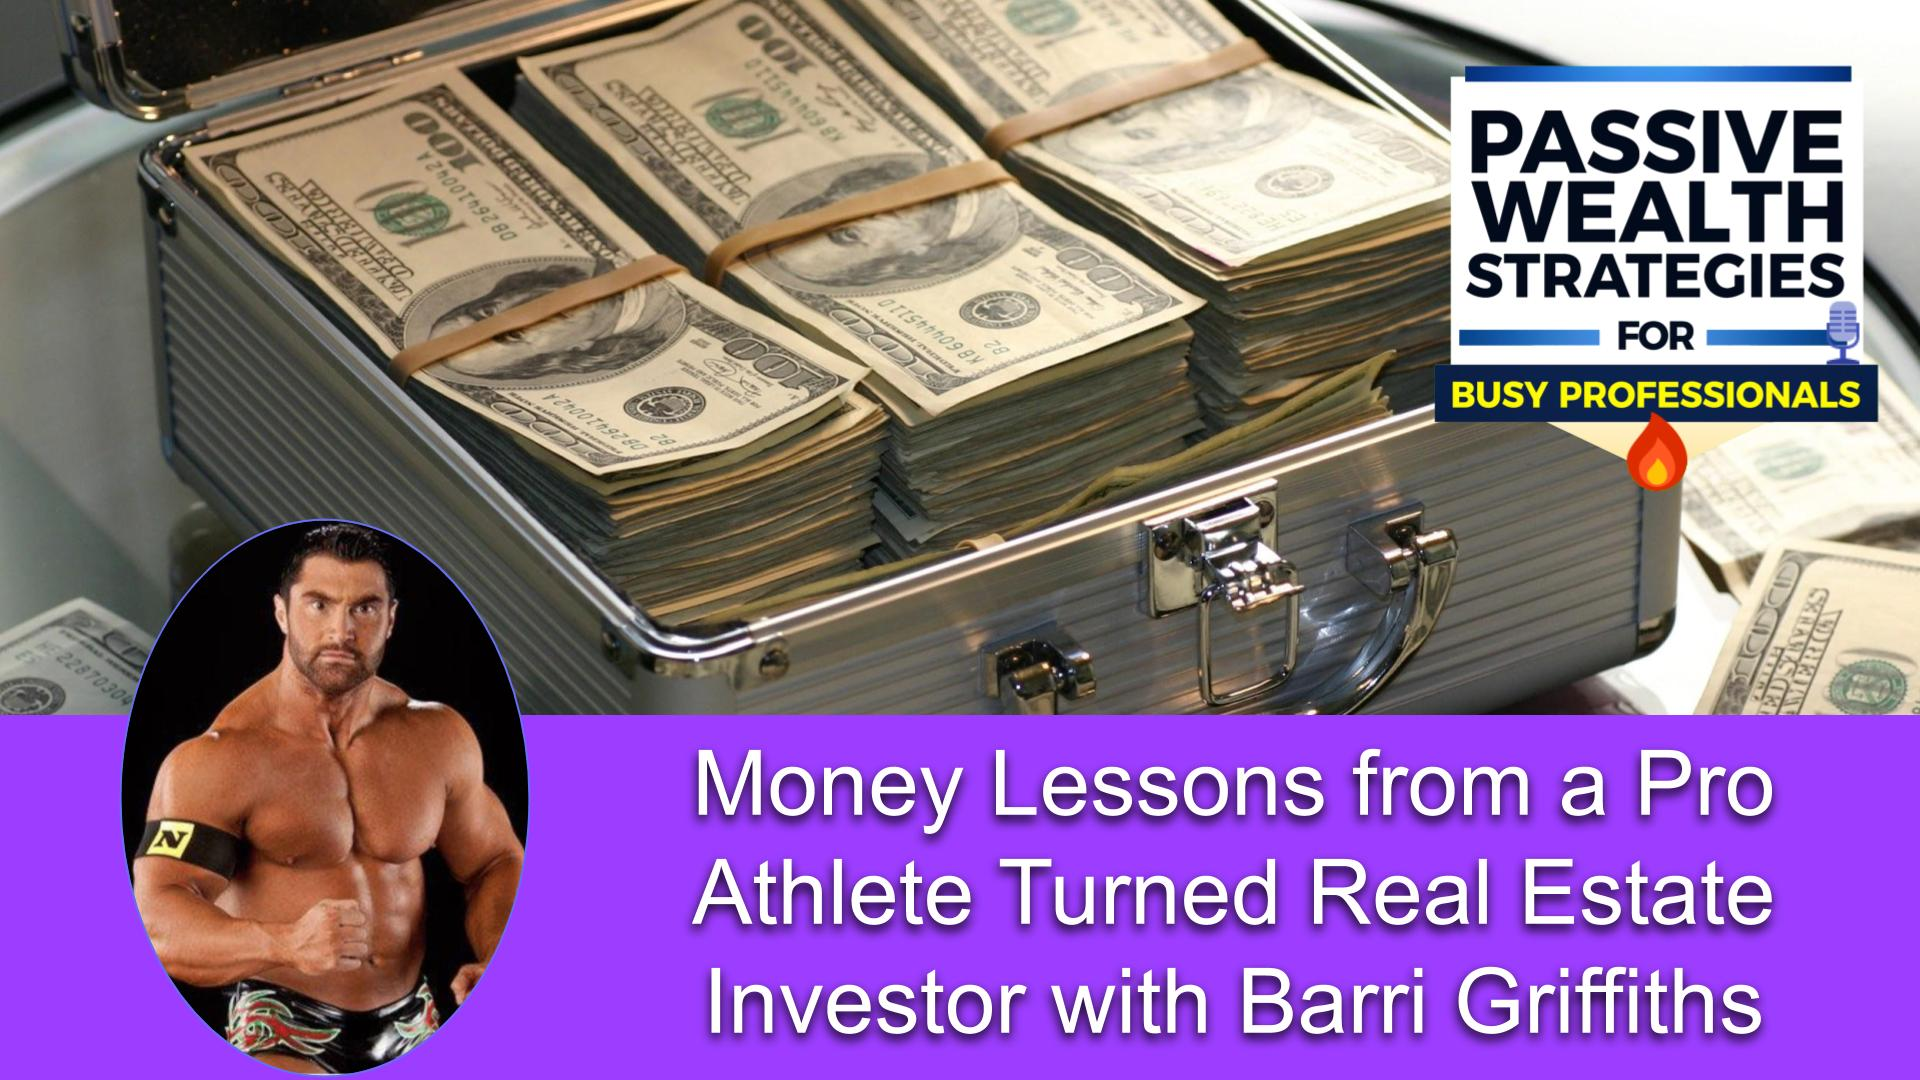 178 Money Lessons from a Pro Athlete Turned Real Estate Investor with Barri Griffiths